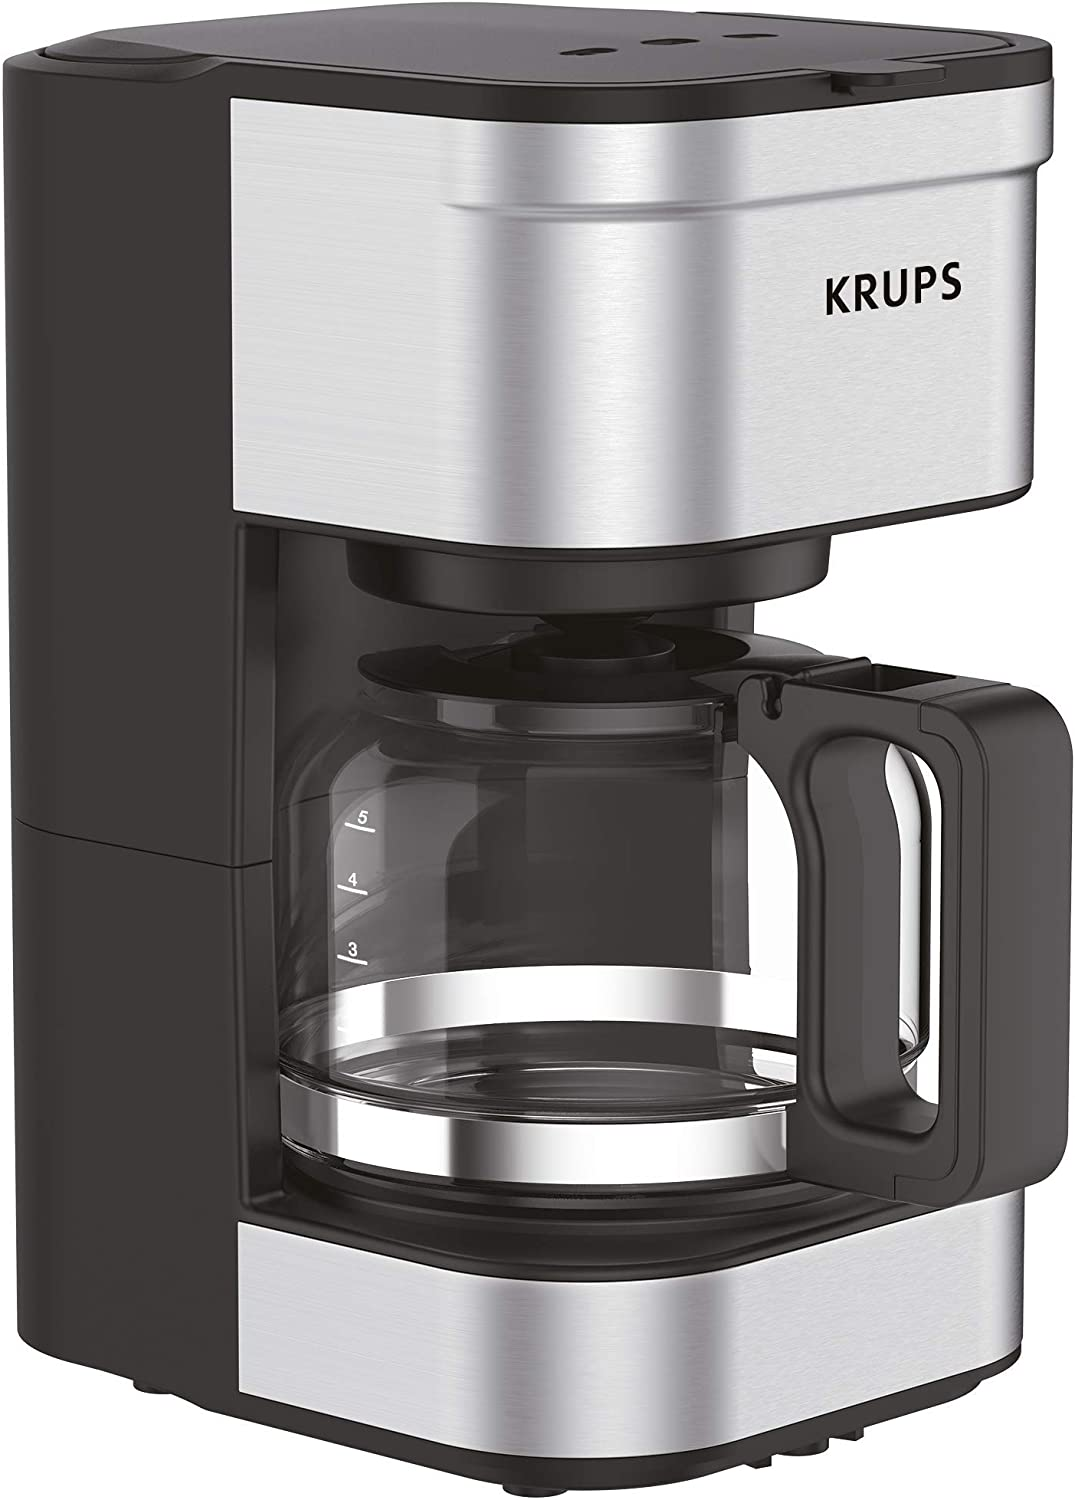 Silver 5 Cup Krups KM202850 Simply Brew Coffee Maker